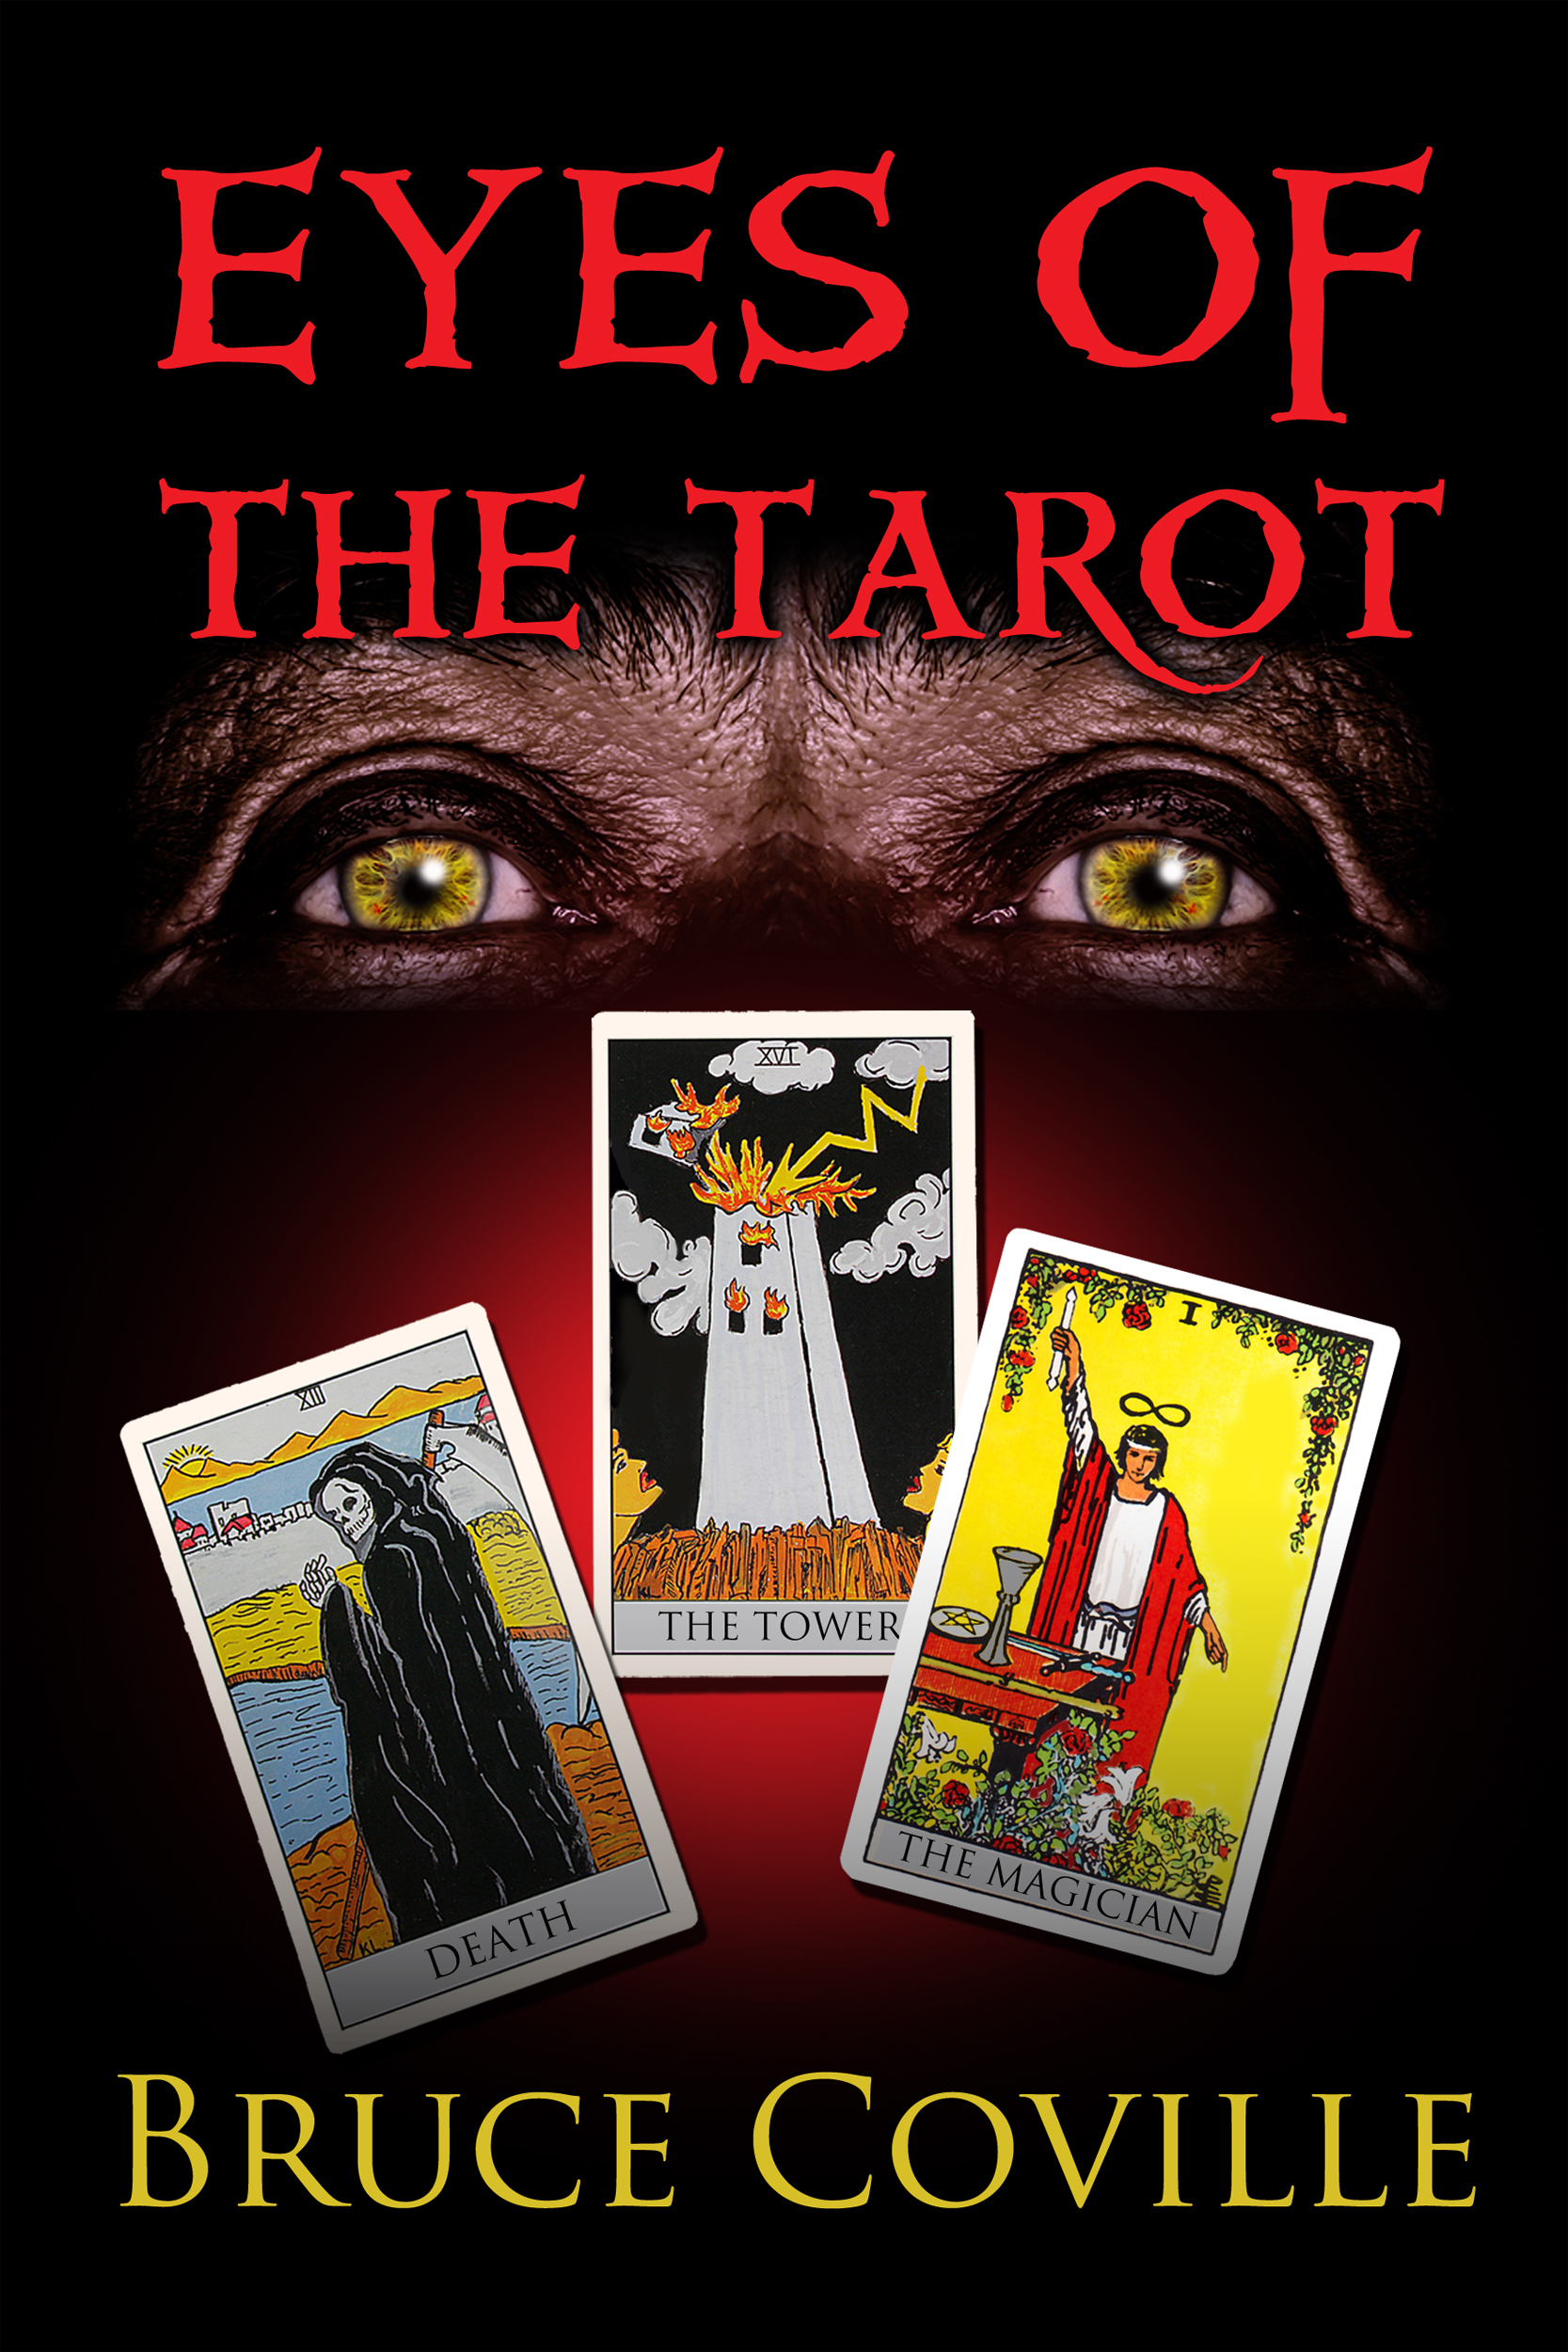 Eyes of the Tarot